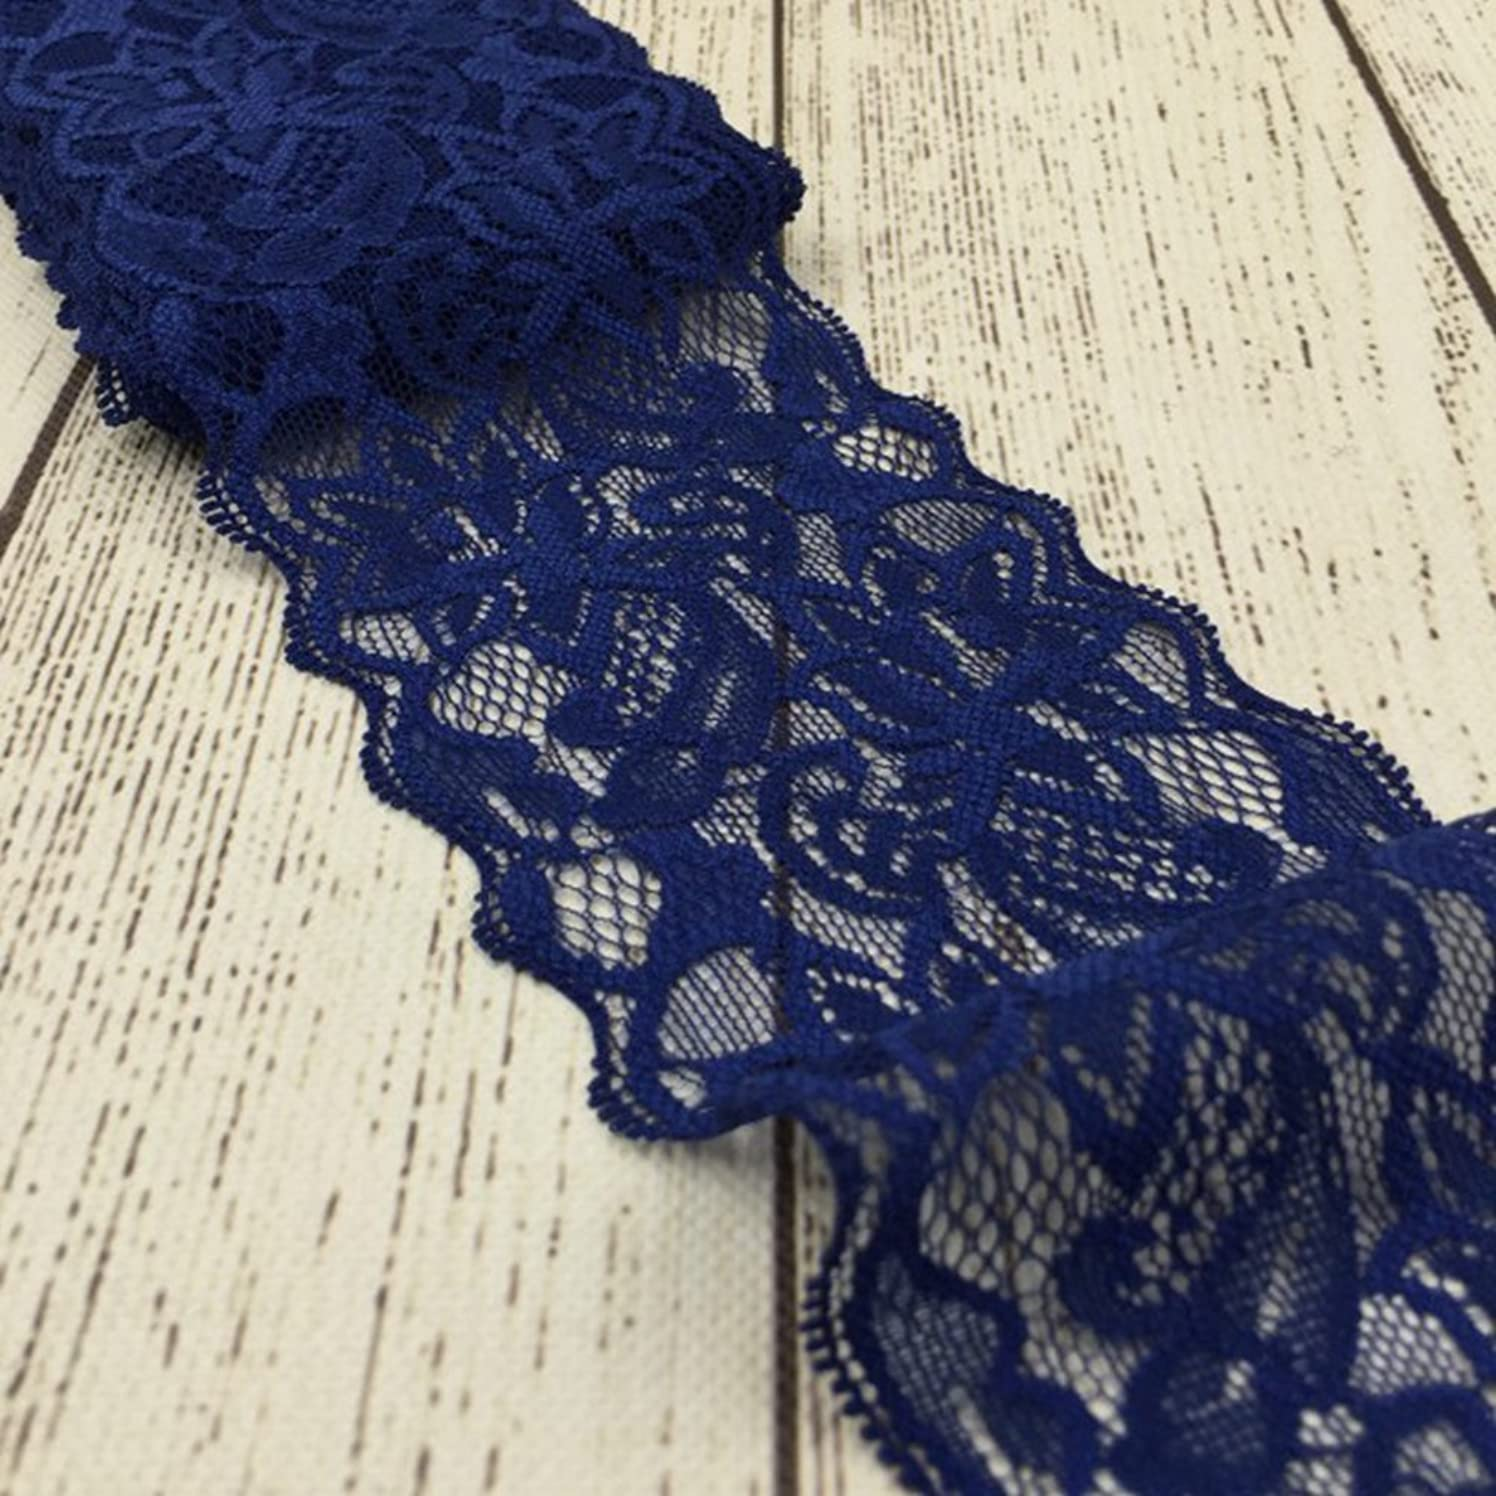 Navy Blue Lace Trim, Tulle Lace Ribbon, Stretch Lace Fabric by The Yard for Sewing Baby Girls Hair Accessories (3.15 inch Wide, Navy Blue, 10 Yards)